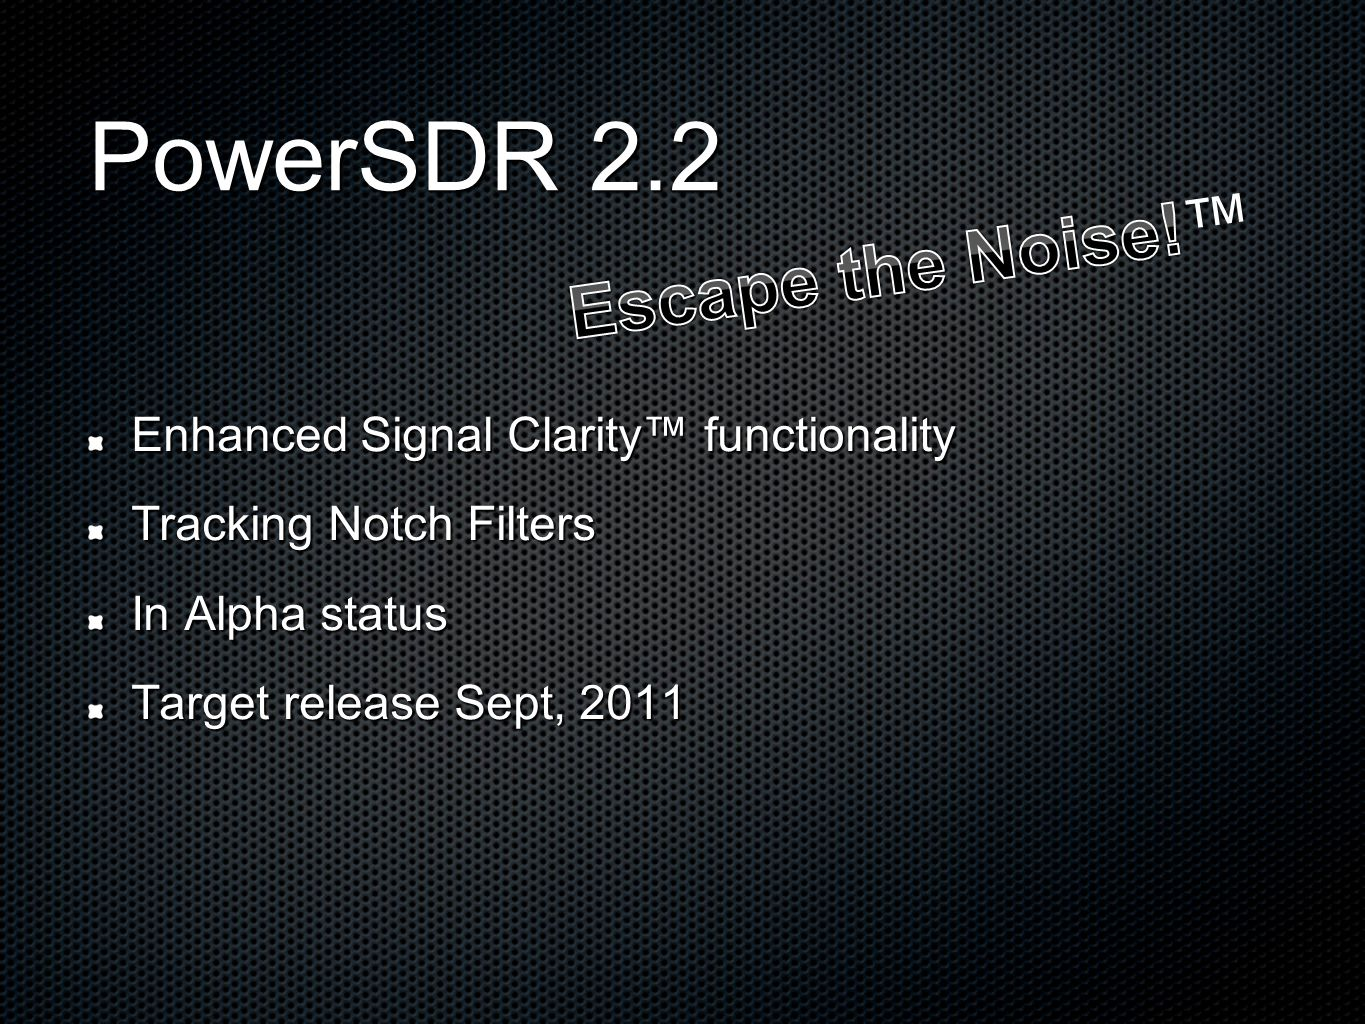 PowerSDR 2.2 Enhanced Signal Clarity™ functionality Tracking Notch Filters In Alpha status Target release Sept, 2011